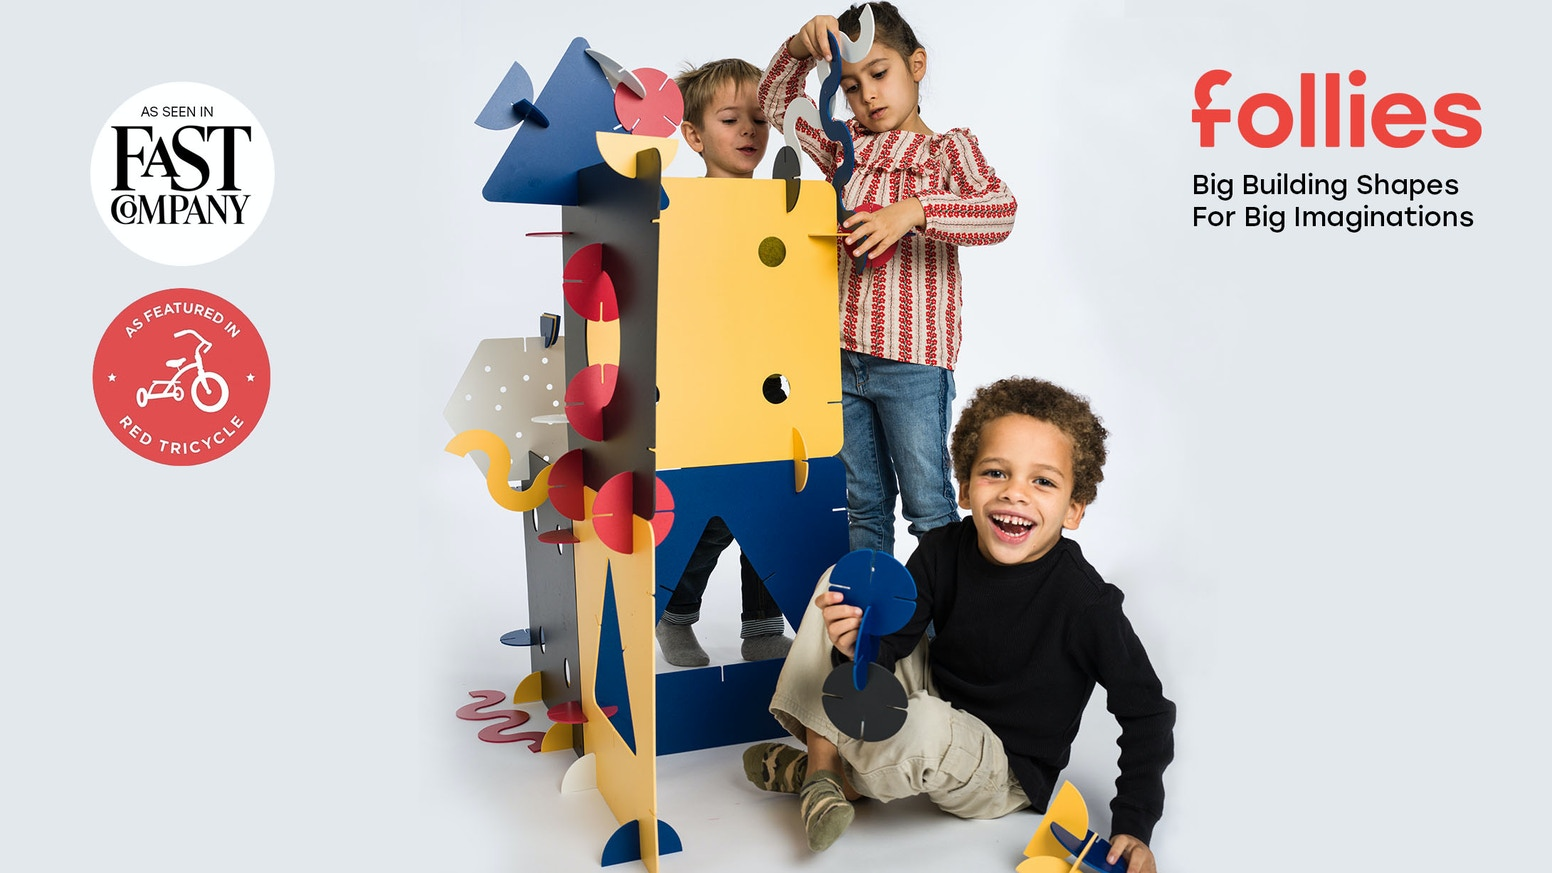 The Big Building Shapes For Big Imaginations. Ages 4+